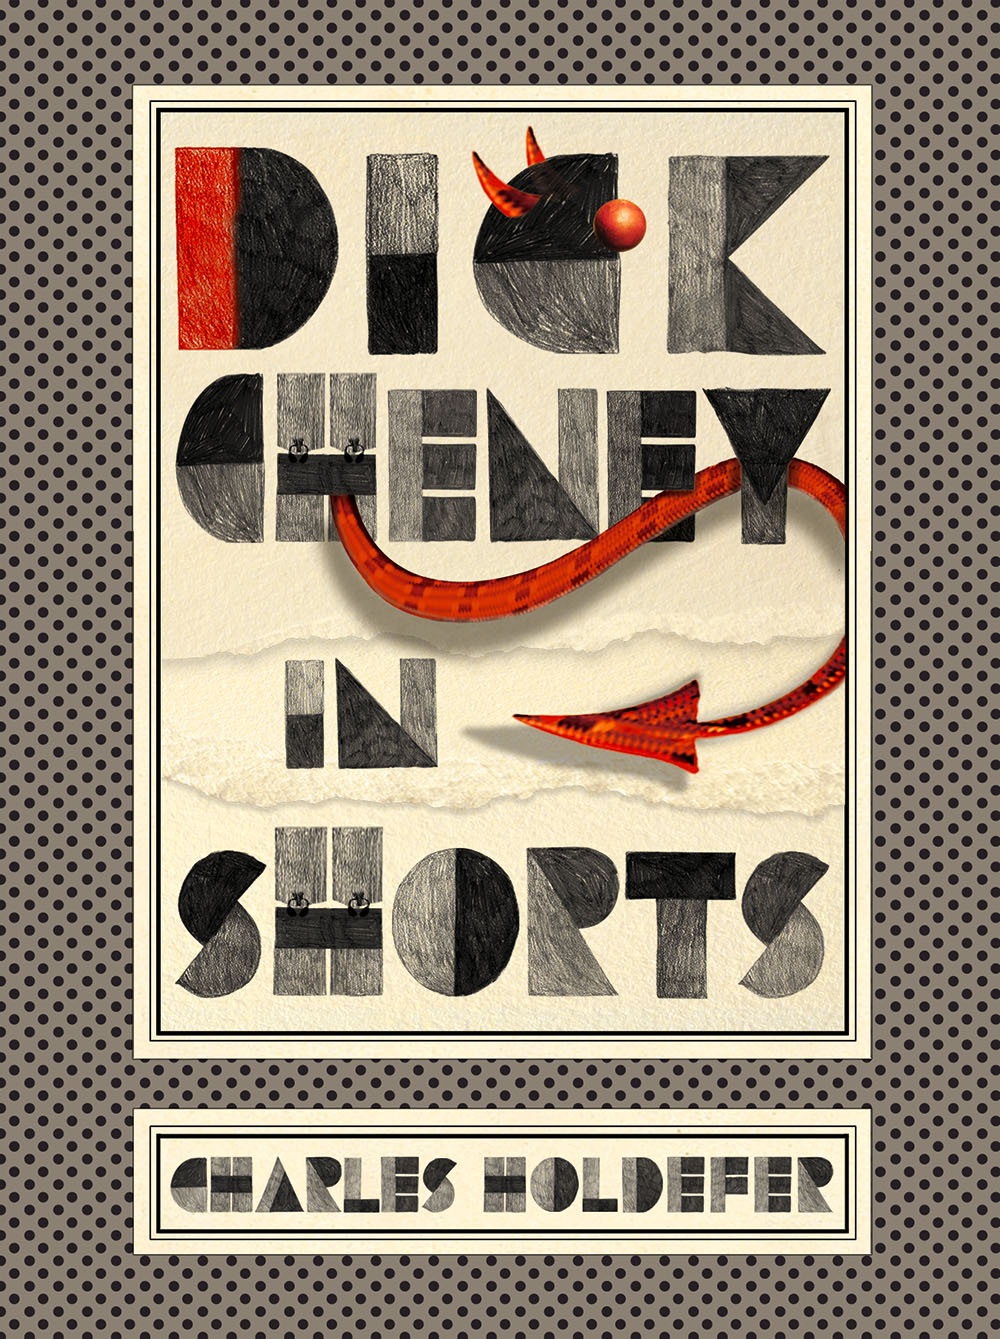 Dick Cheney in Shorts